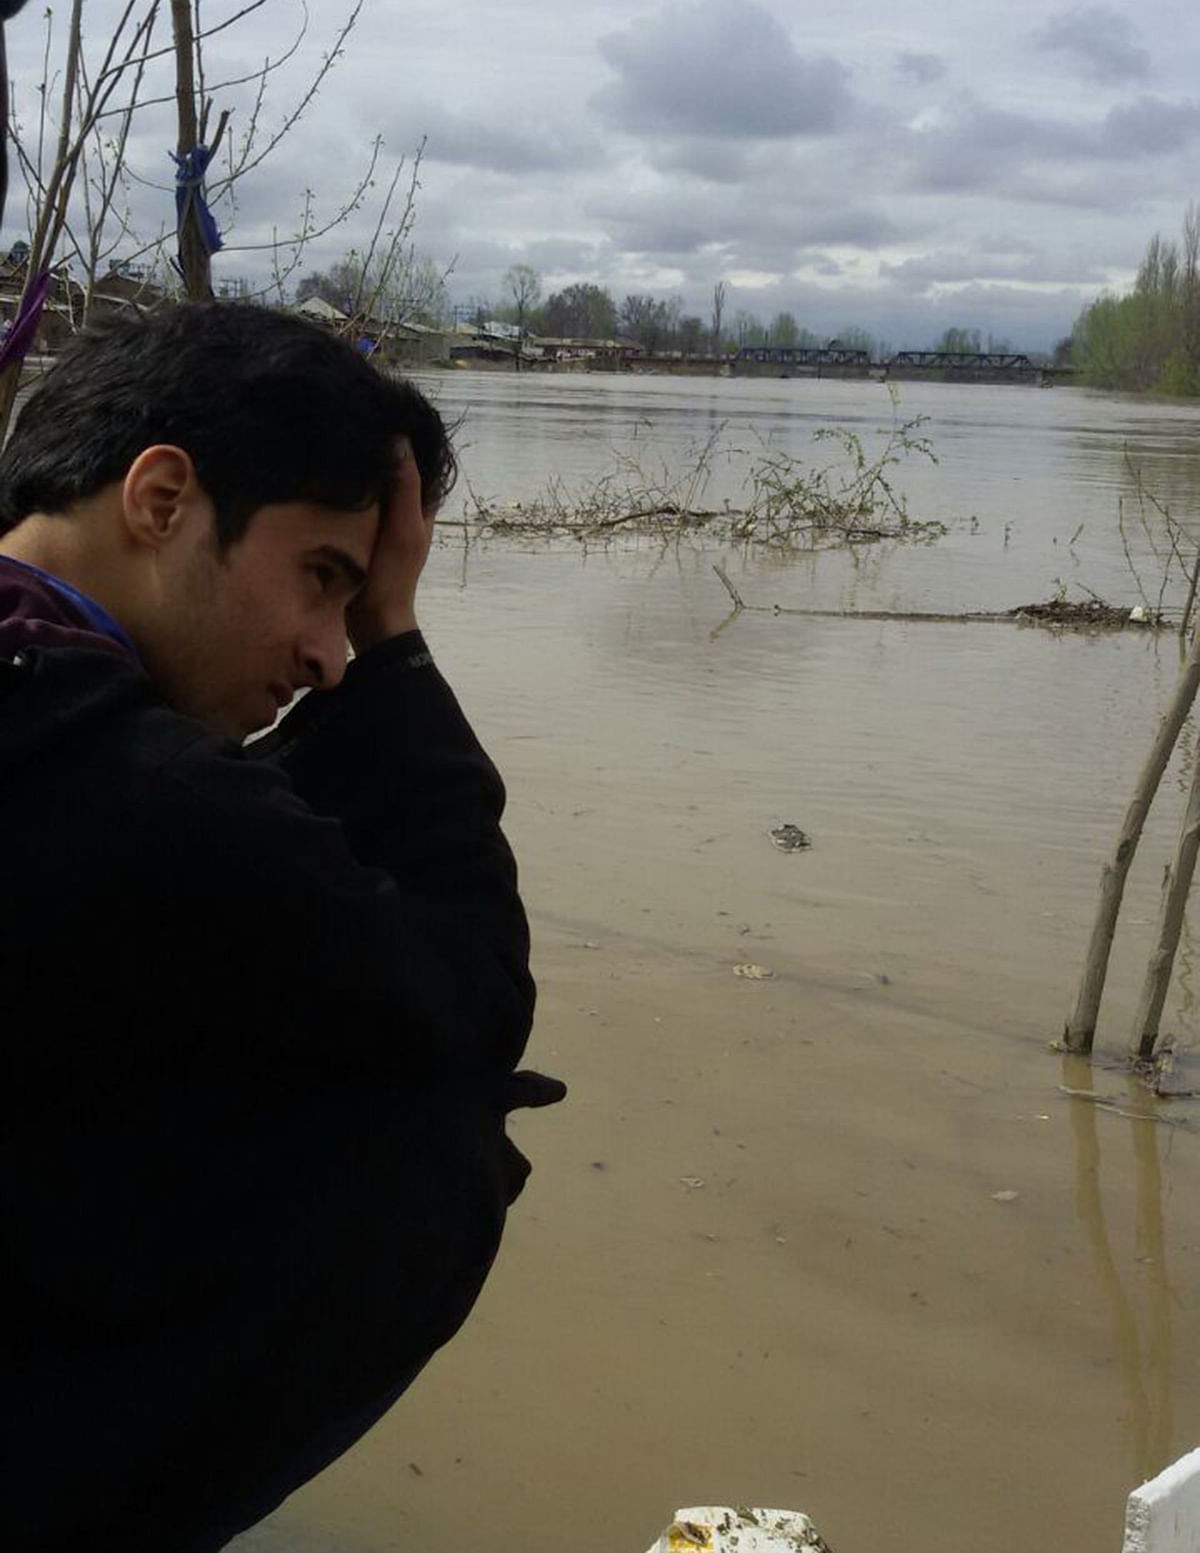 A Kashmiri youth examines the destruction sitting on the banks of river Jhelum in Pampore, 10 kms from Srinagar.  (Photo: Mohammed Mukarram)